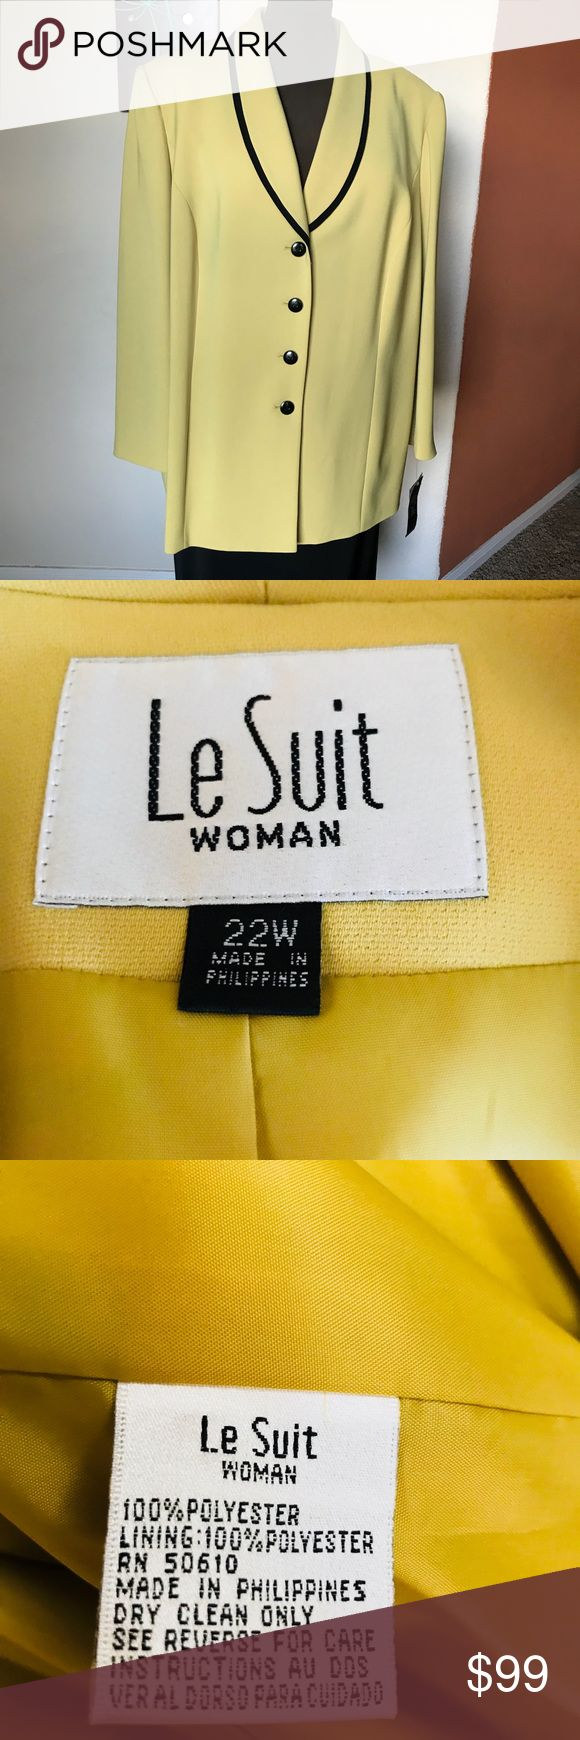 Business suit for women . Le Suit Woman . Great designer color . Business suit great details Le Suit Other